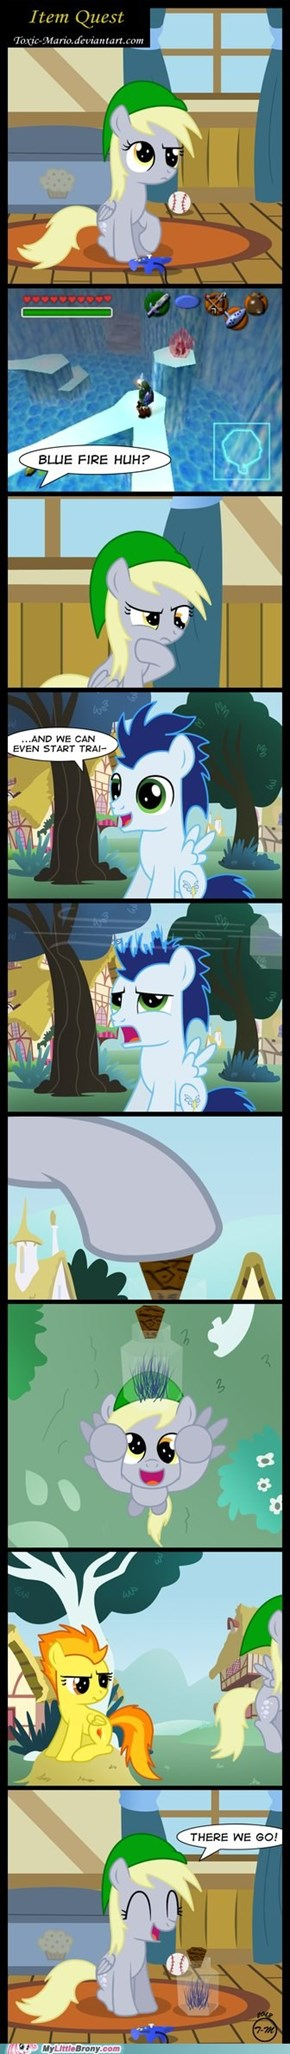 The Legend of Derpy